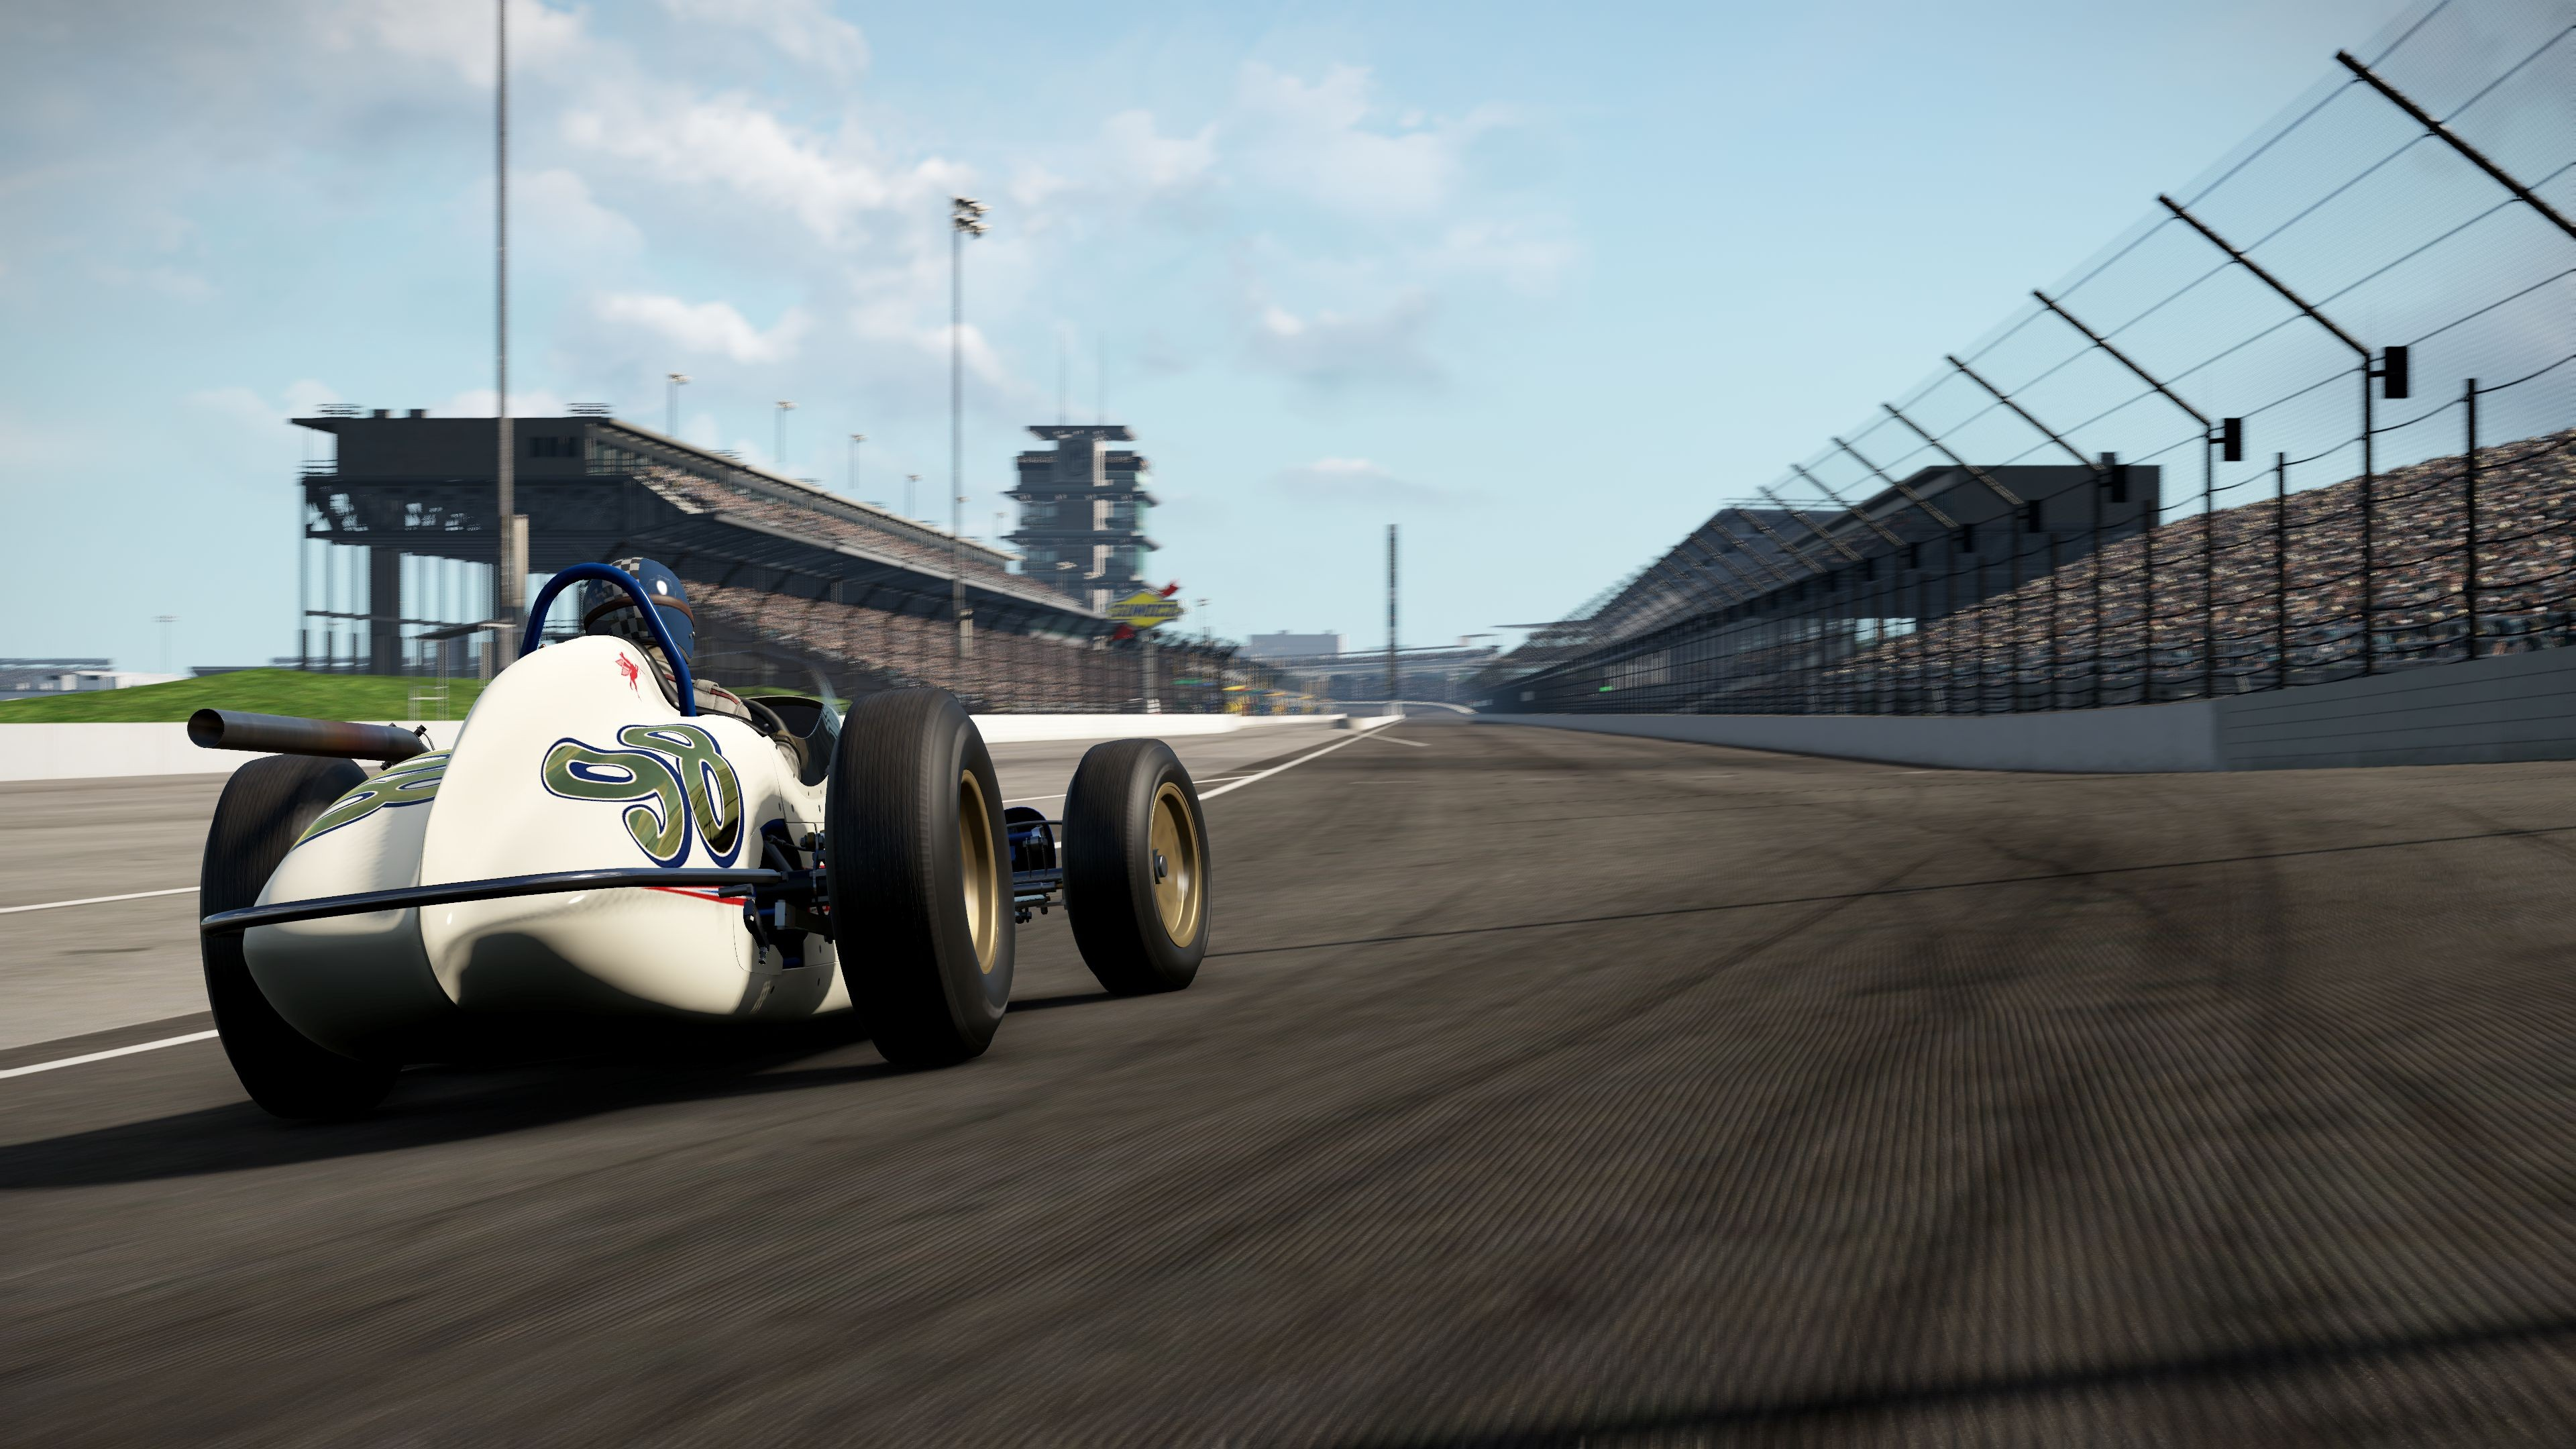 Indy Car Wallpaper Hd Wallpaper Project Cars 2 Soul Of Motorsport E3 2017